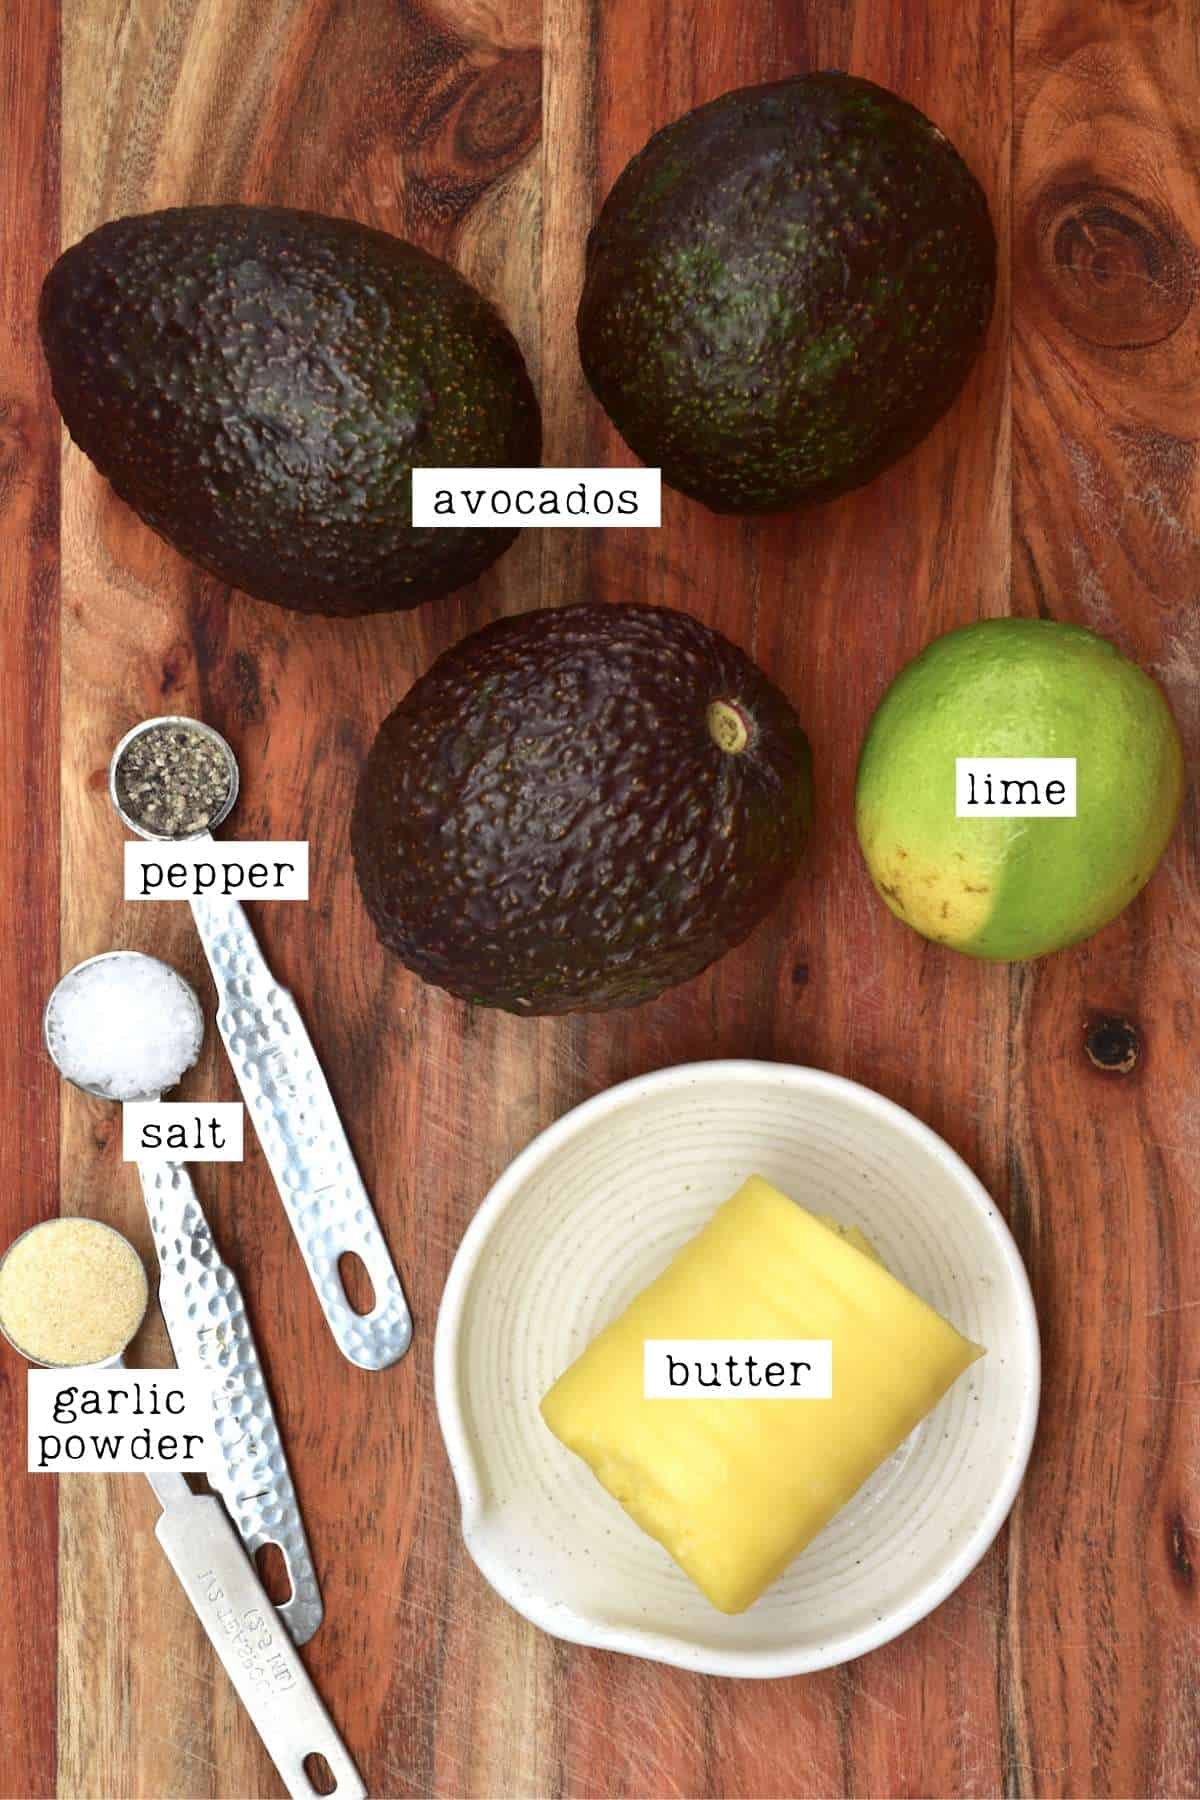 Ingredients for avocado butter